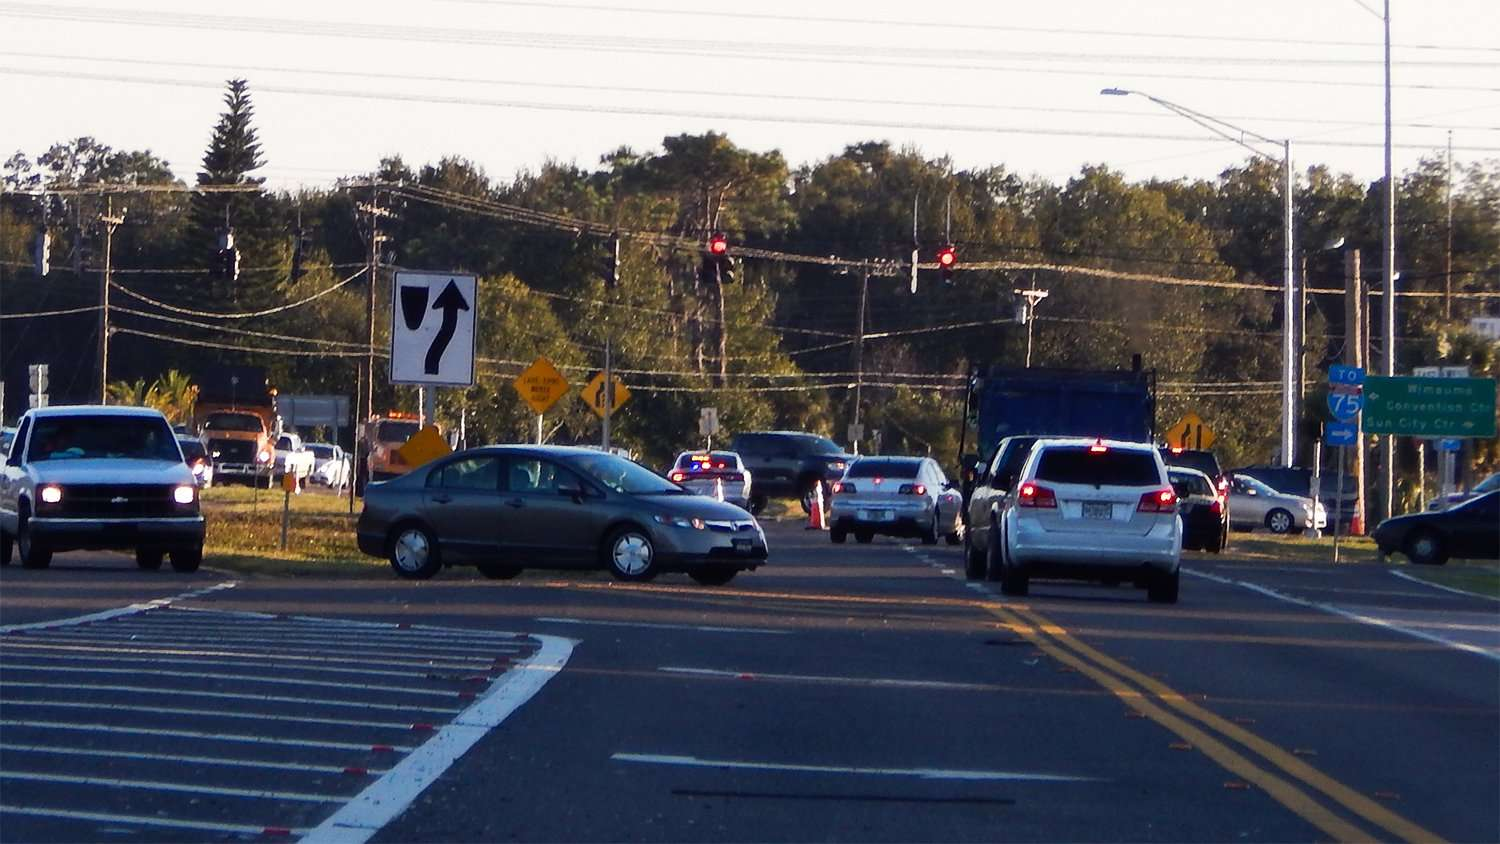 Police and emergency vehicles at intersection 674 and 301 Nov 10 2014 Wimauma FL